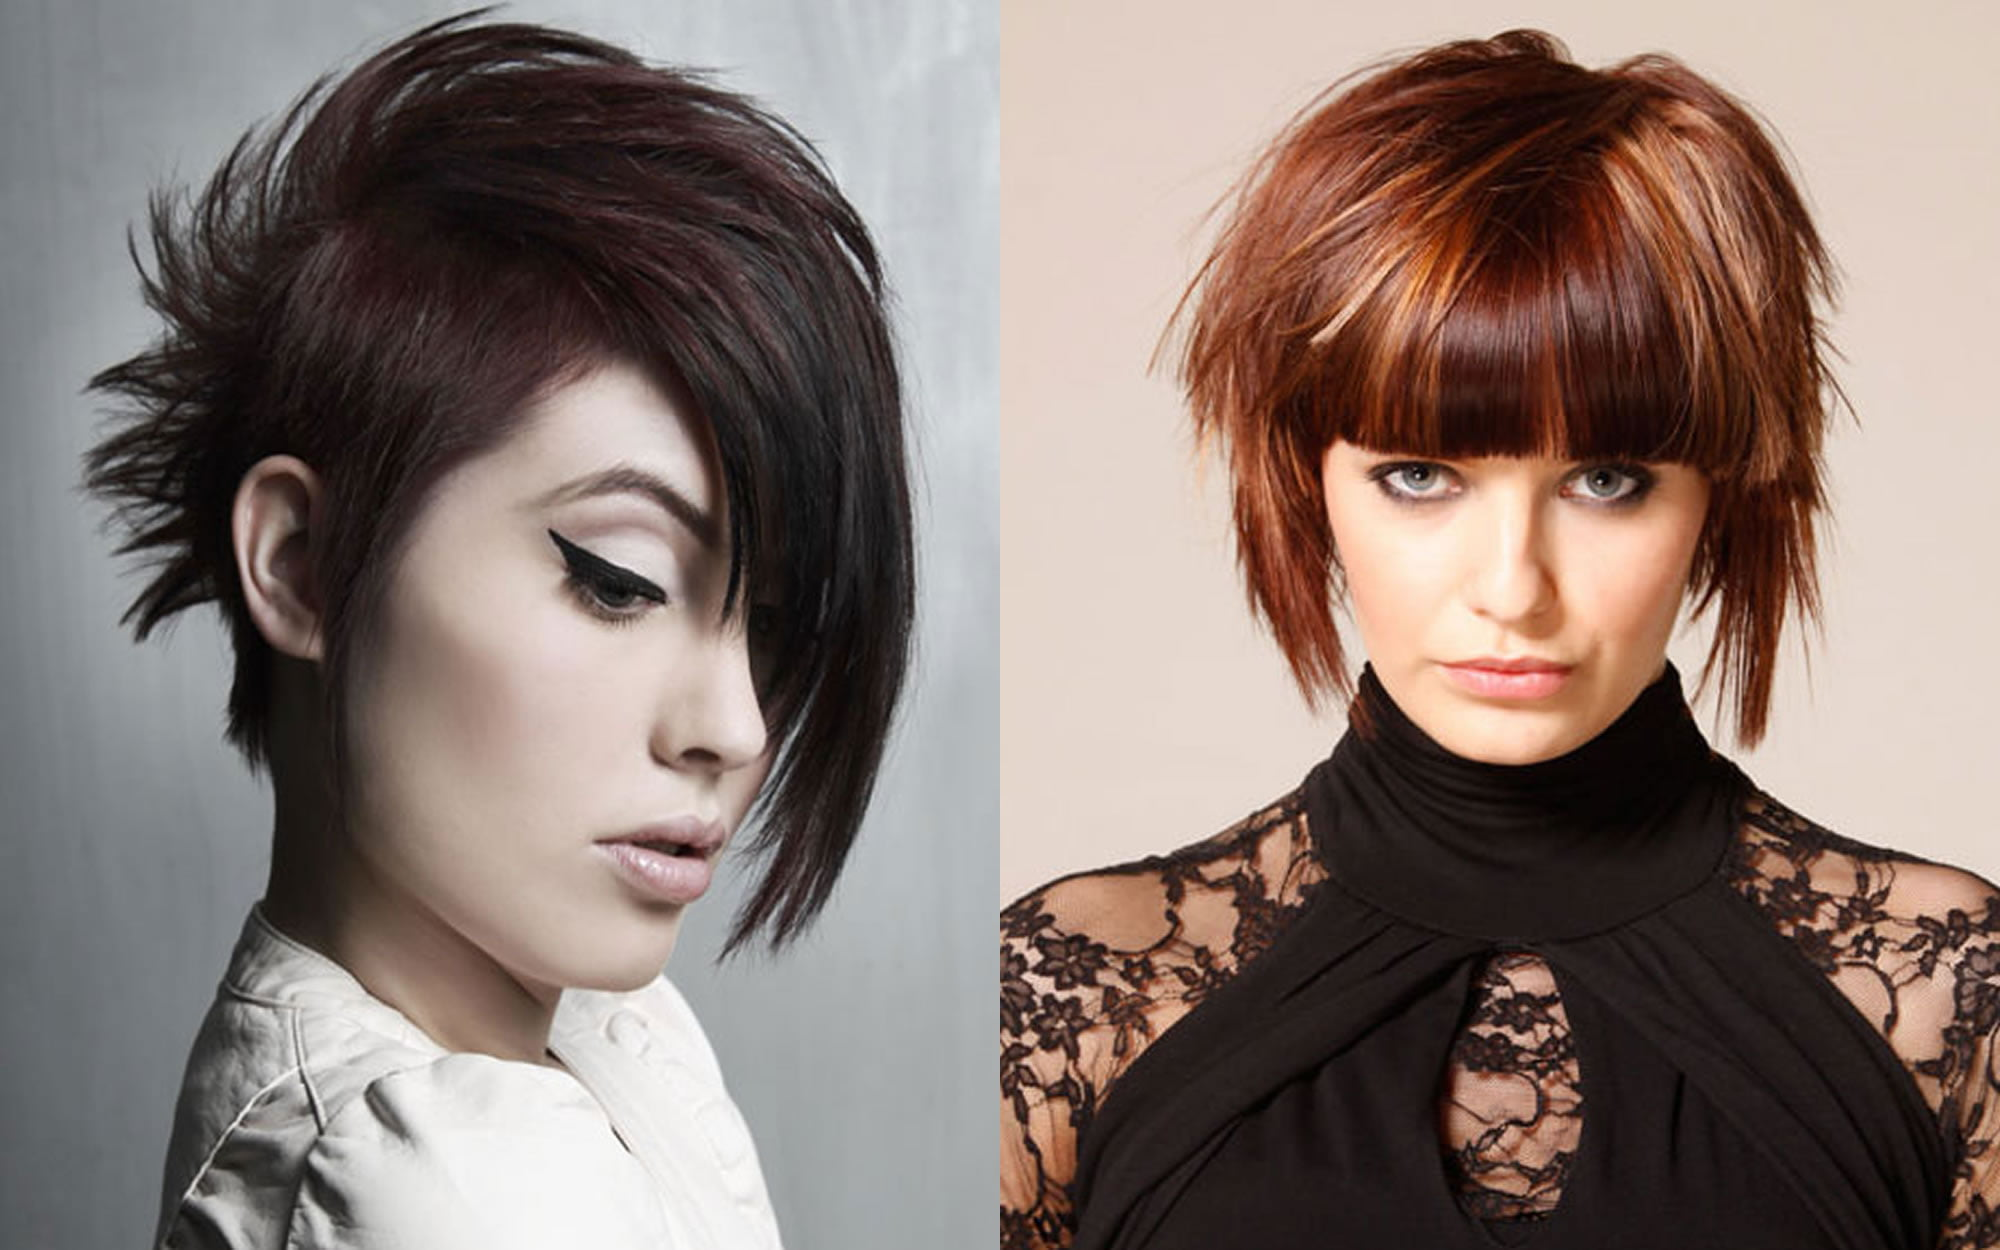 Hair Style Website: Best Haircuts For Short Hair 2018-2019 & Hair Color Trends